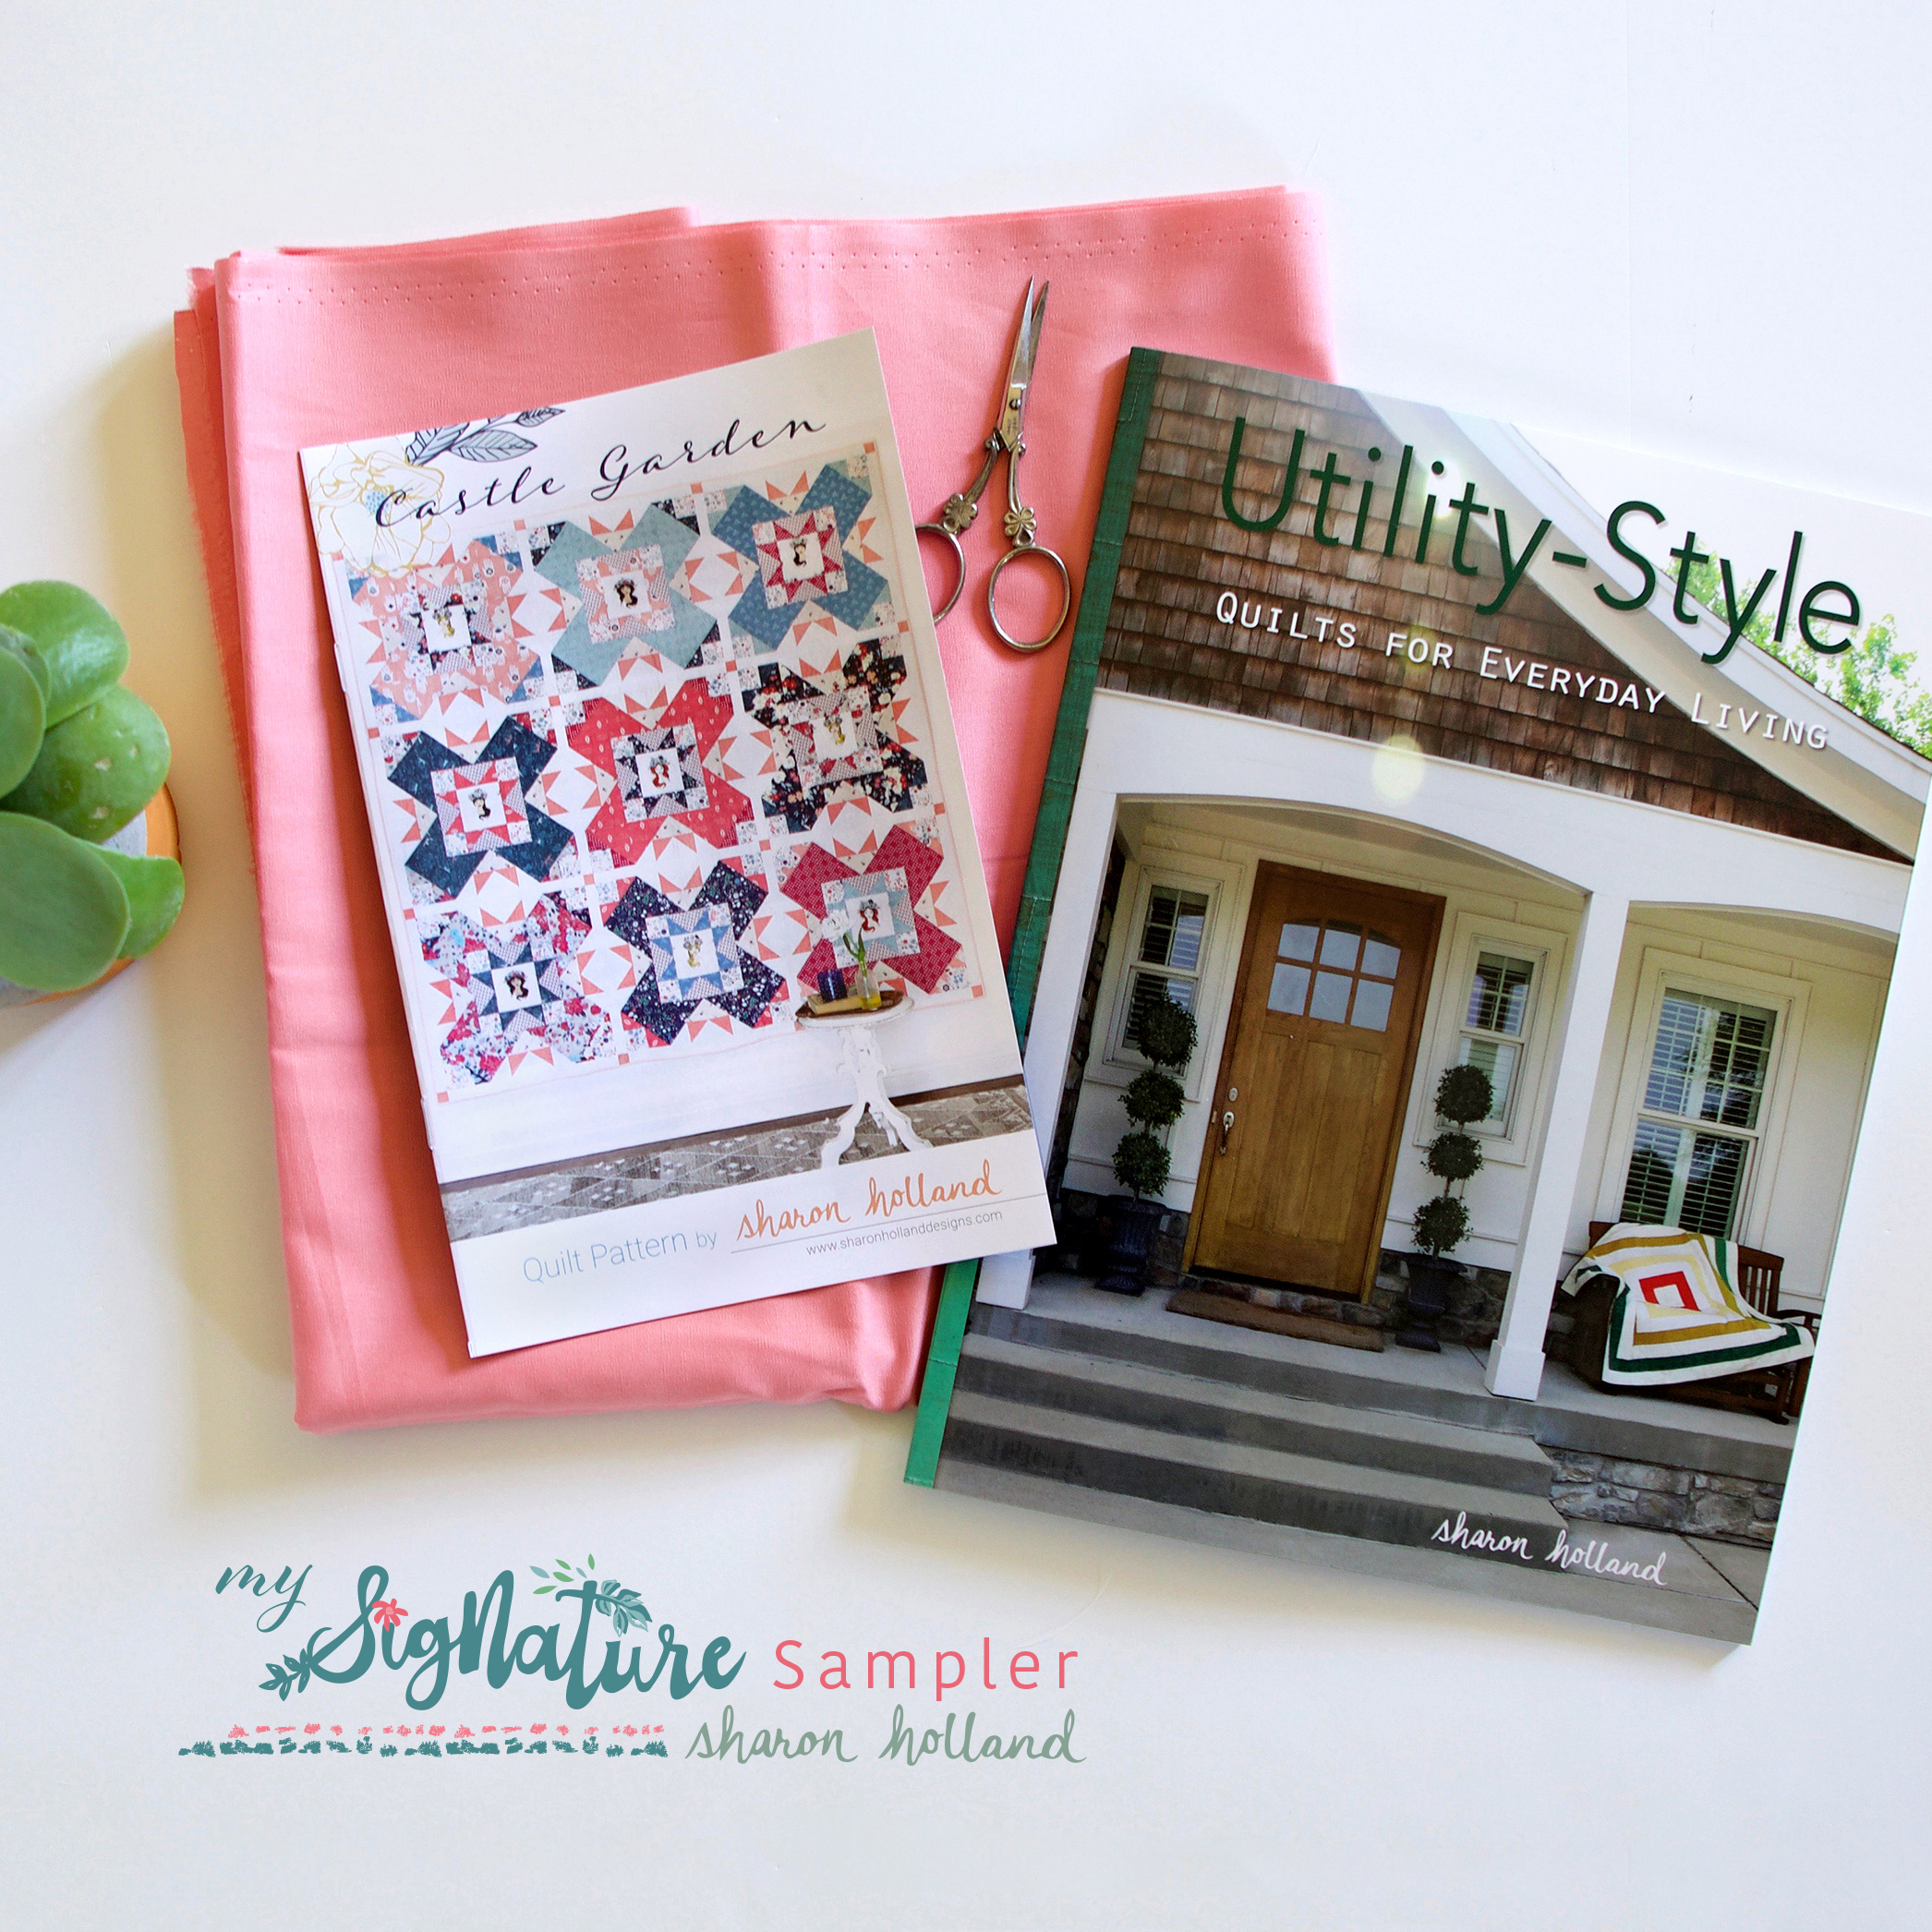 Sharon Holland Pattern and Book.jpg